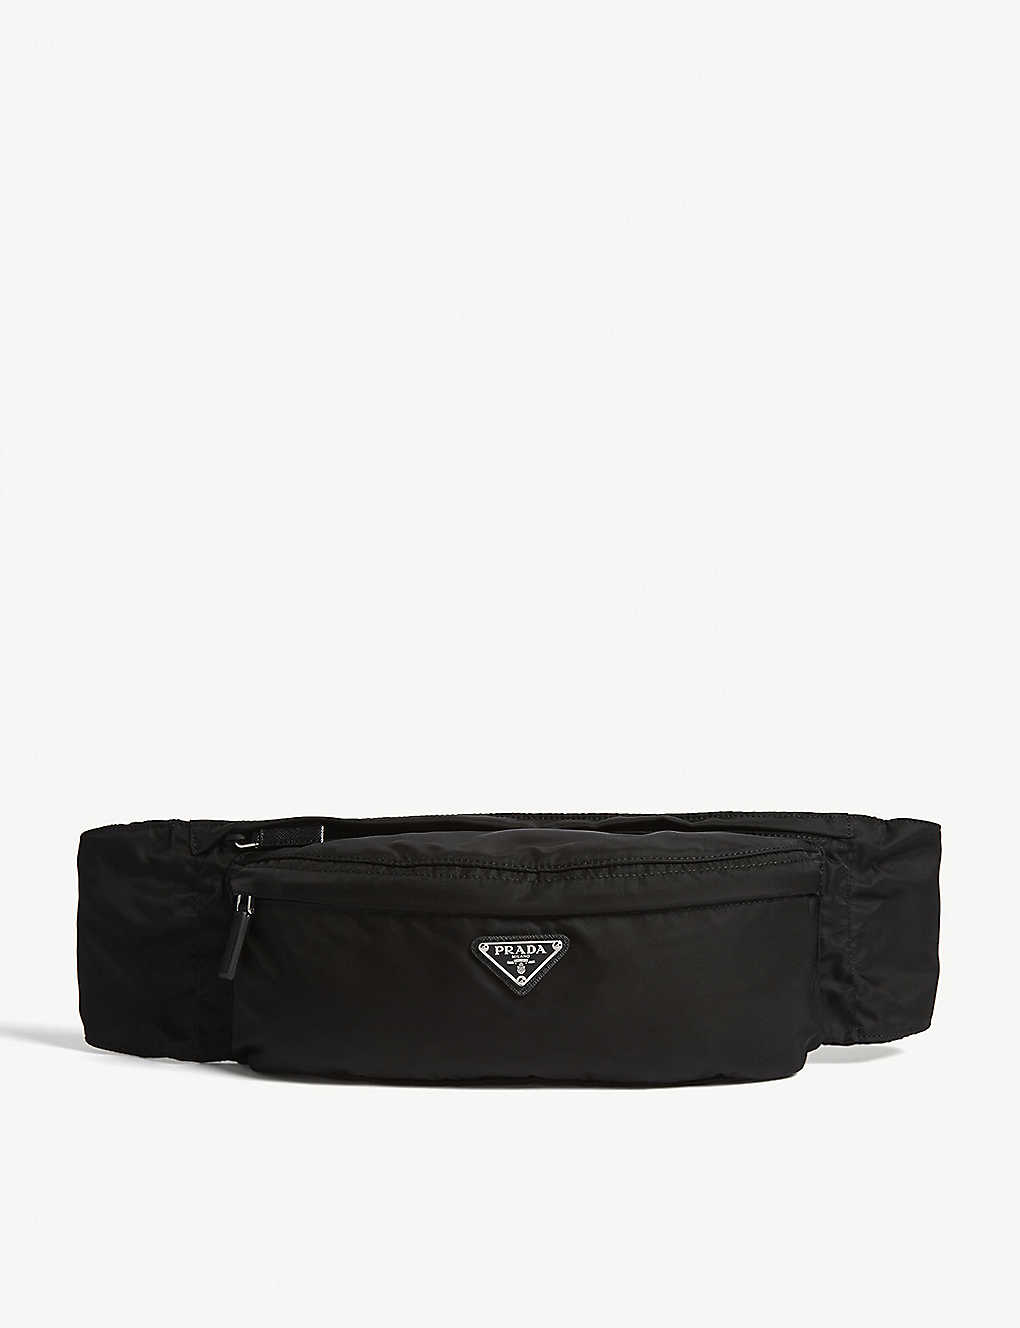 38f9eaf8f080 PRADA - Logo nylon belt bag | Selfridges.com